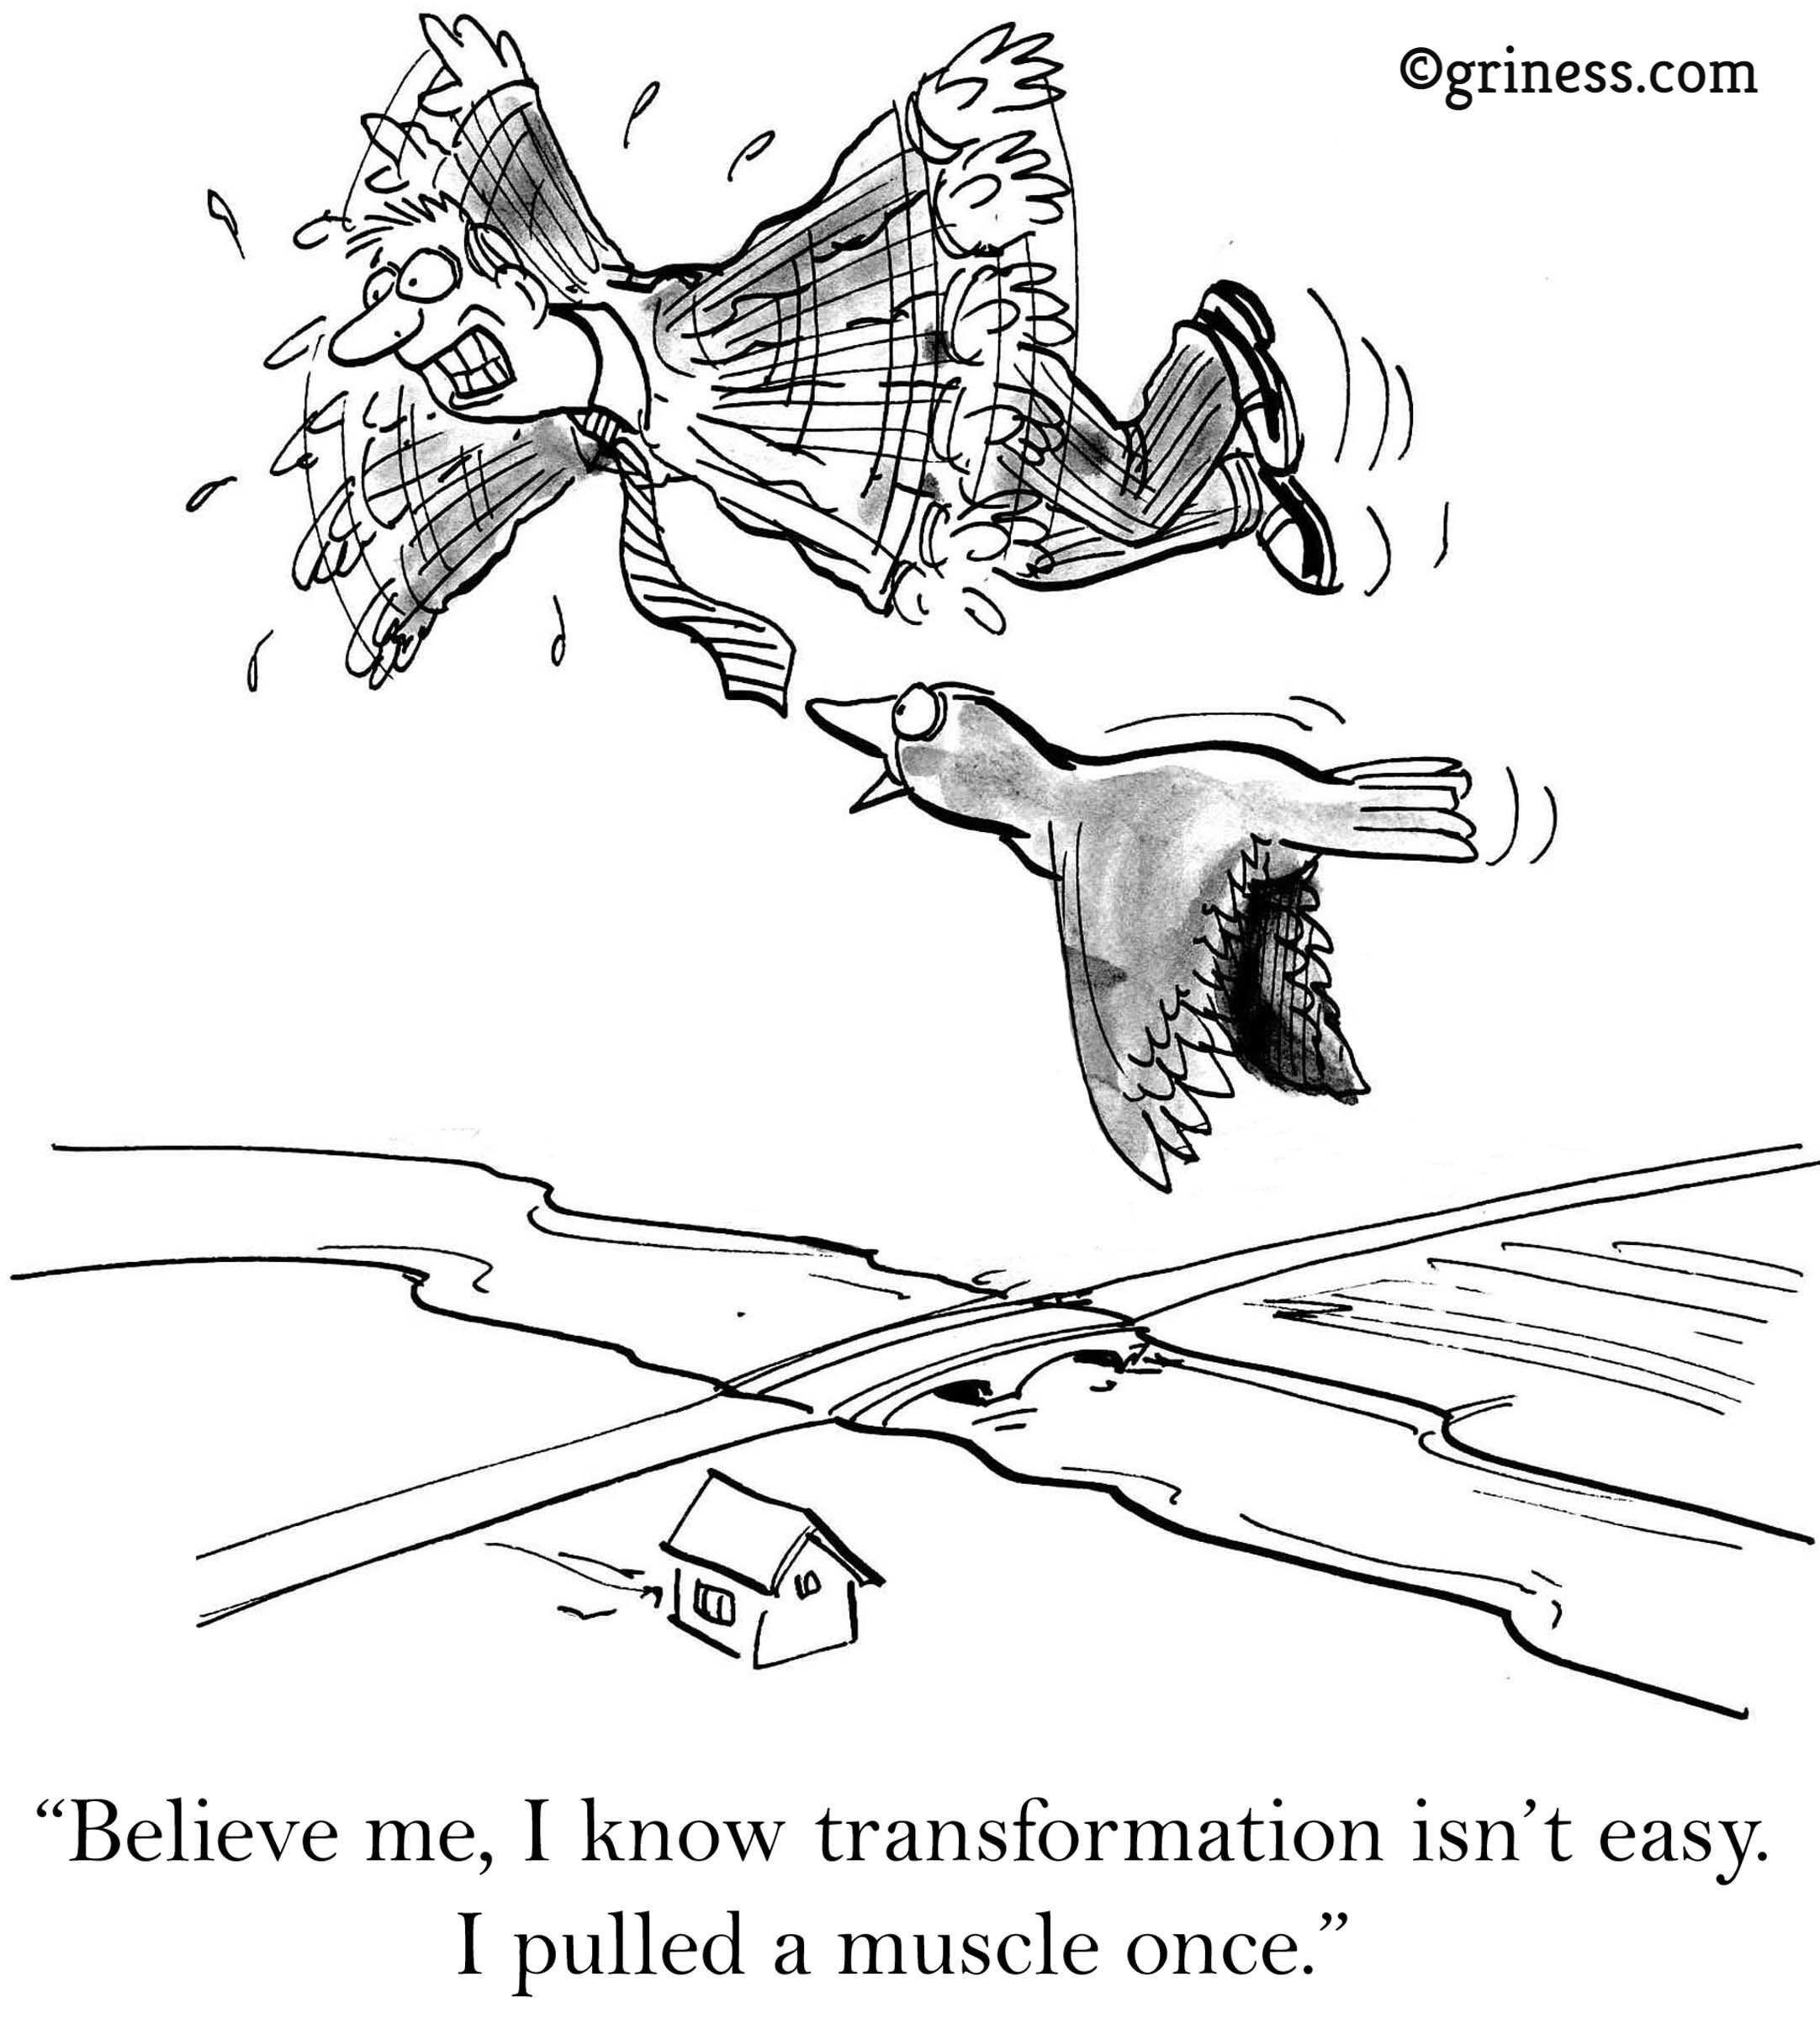 believe me i know transformation is not easy i pulled a muscle once corporate humor cartoons free